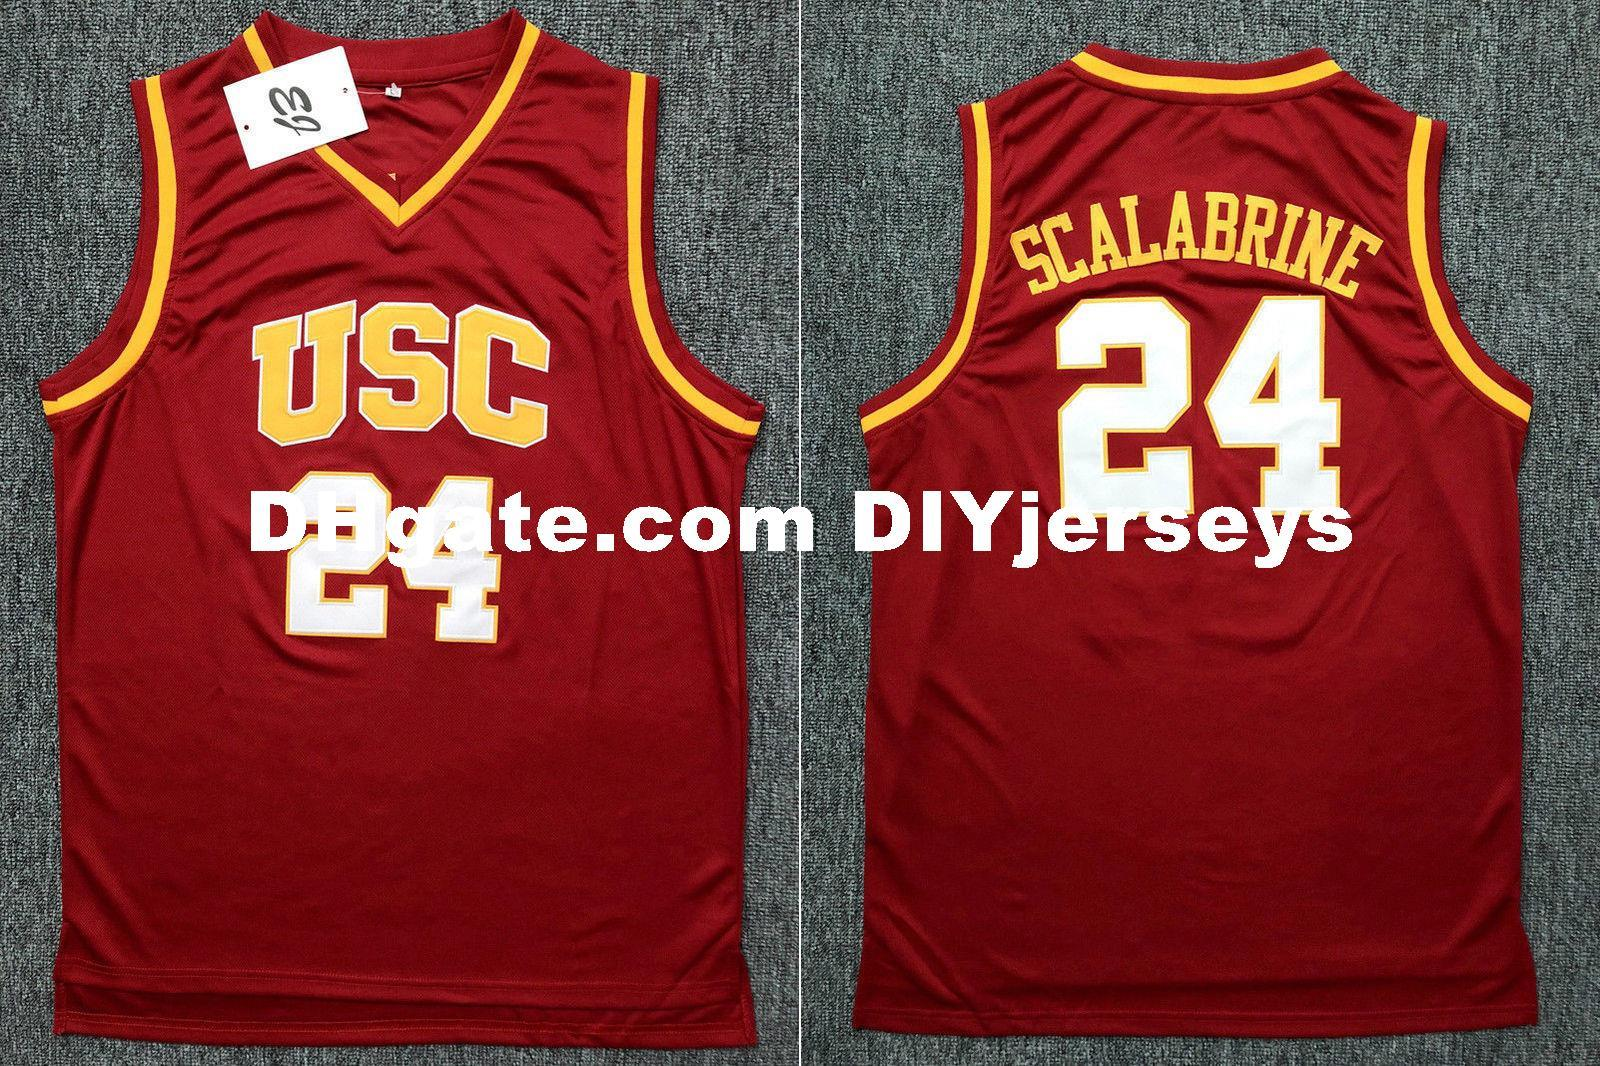 more photos fd488 2fa59 Wholesale Cheap Brian Scalabrine #24 USC College Stitched Basketball  Stitched Jersey Customize Any Name N0. MEN WOMEN KIDS XS-6XL NEW